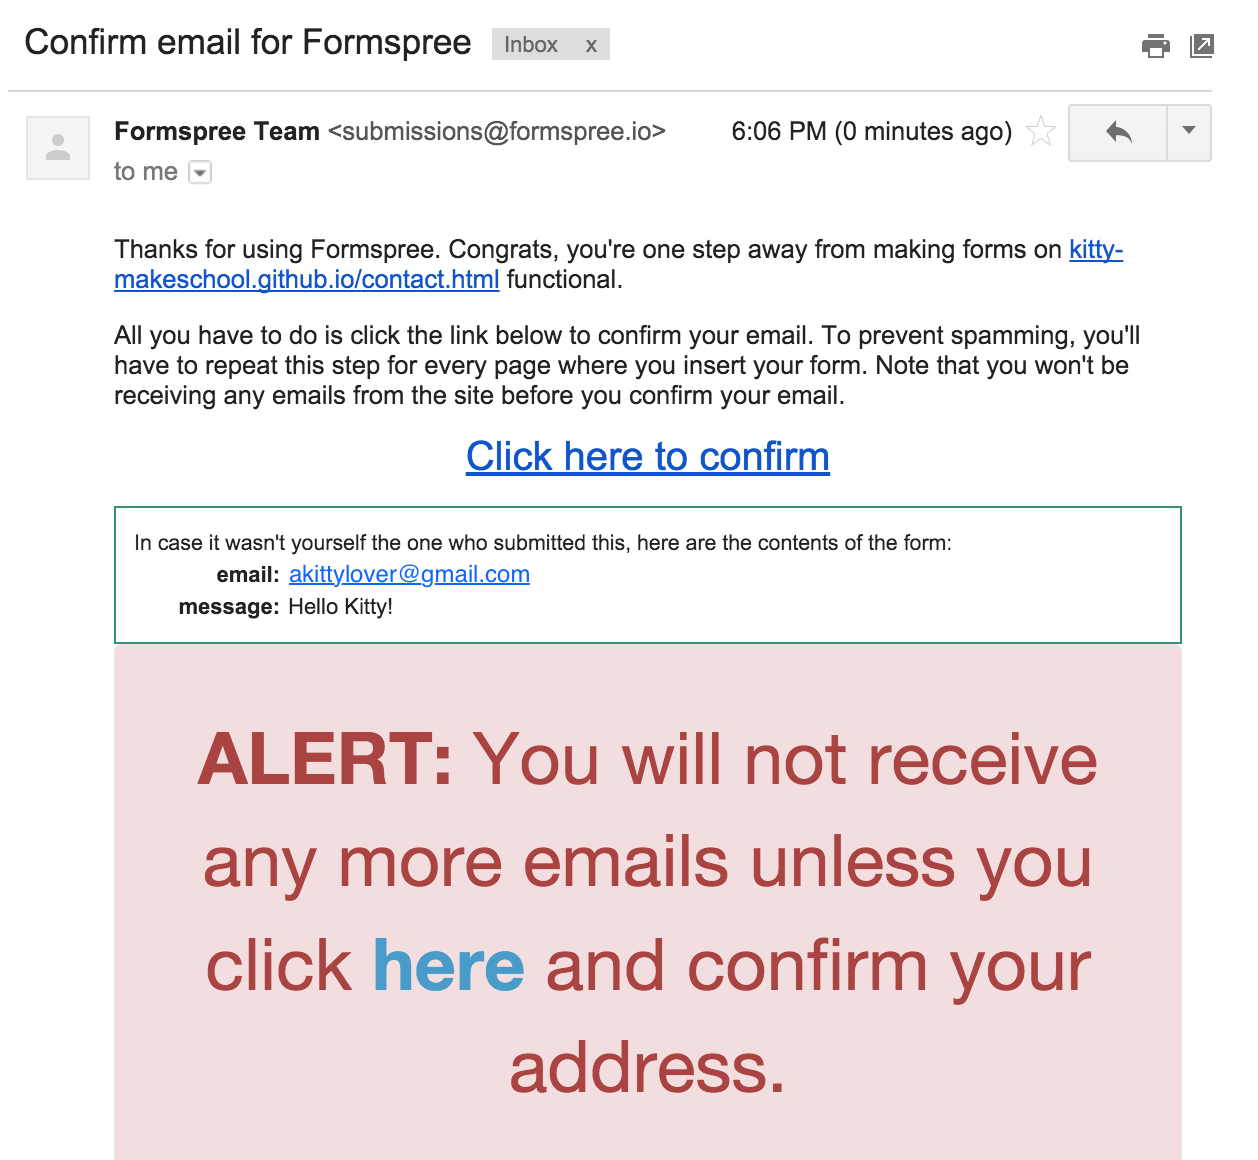 Formspree confirmation email